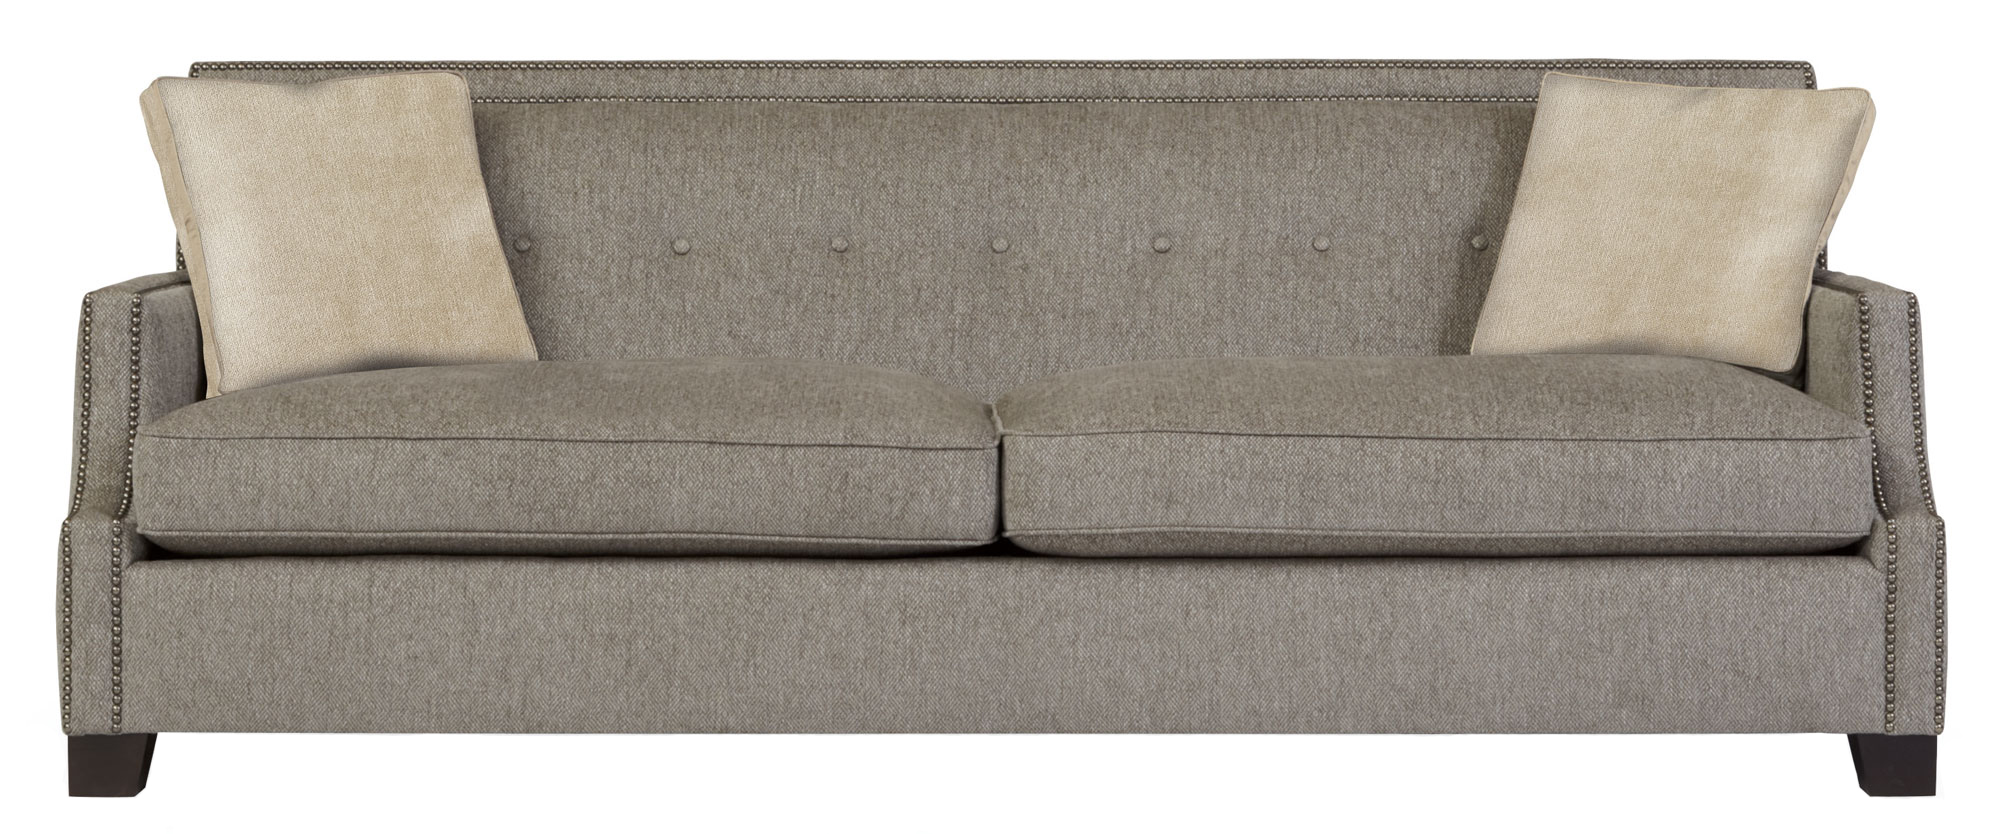 Loveseat Queen Sofa Sleeper